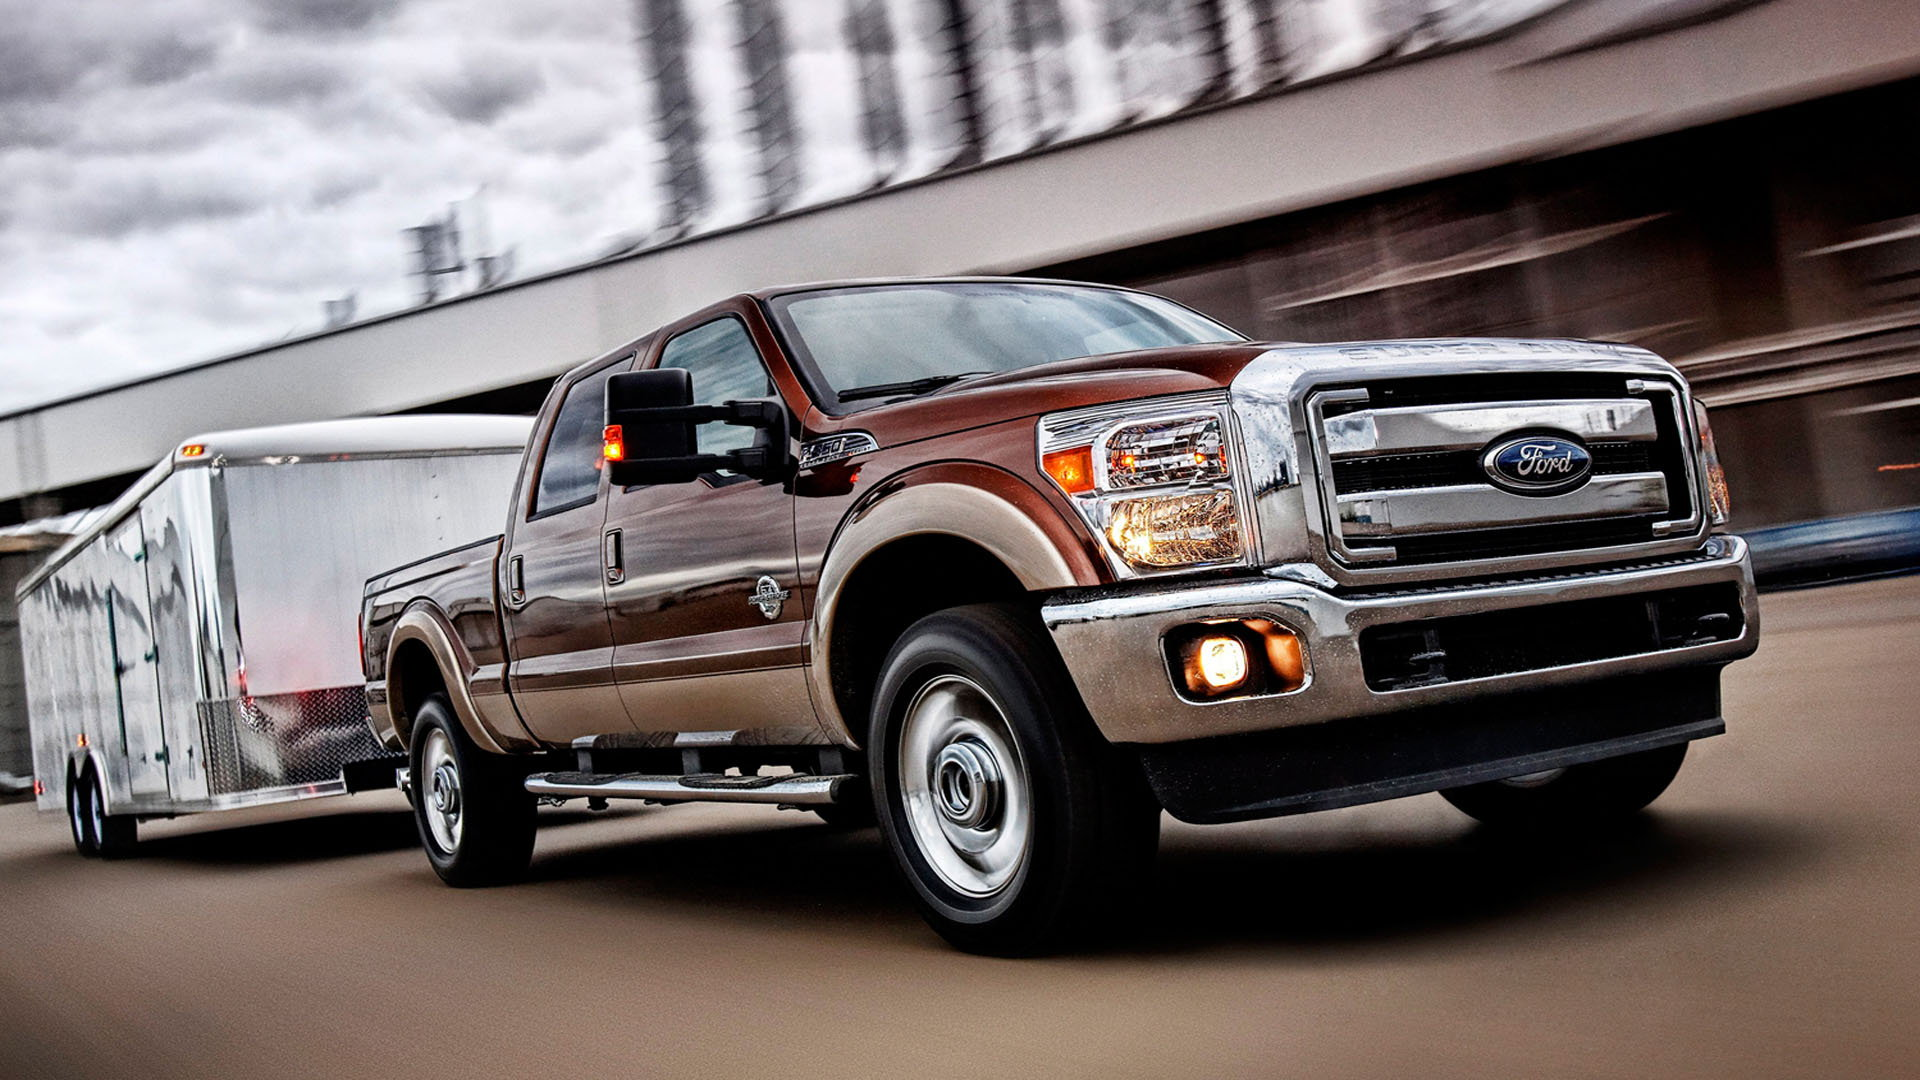 Ford F 250 Towing And Hauling Specifications Ford Trucks